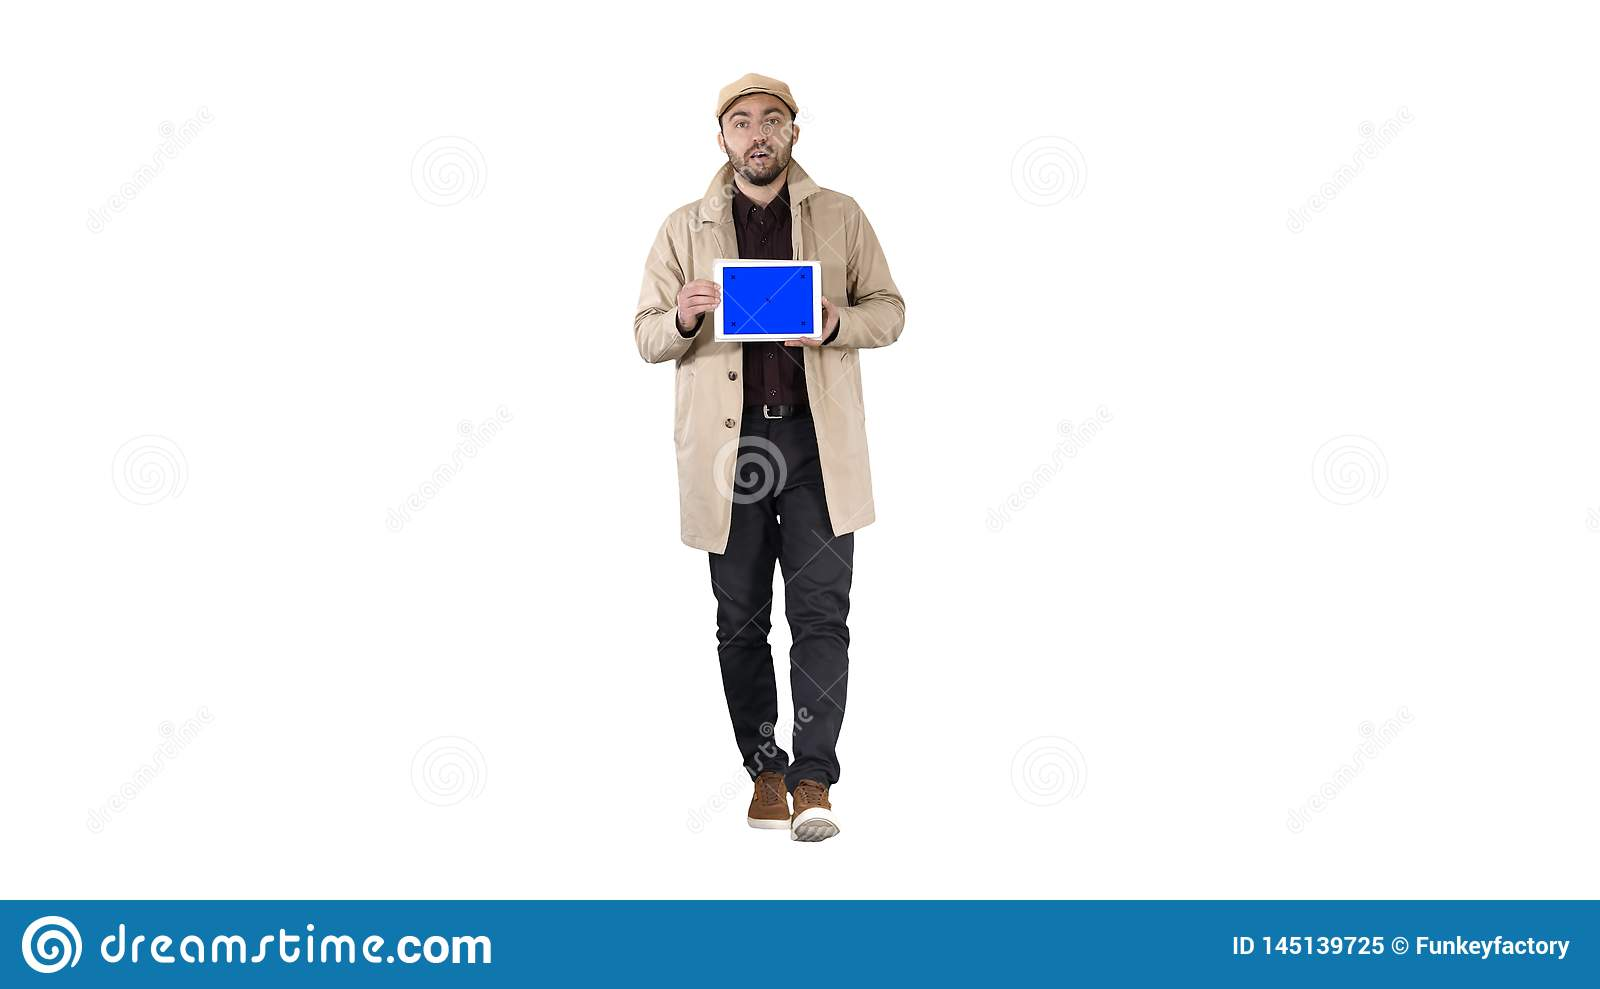 Young man walking, talking and showing digital tablet with blue screen mockup on white background.